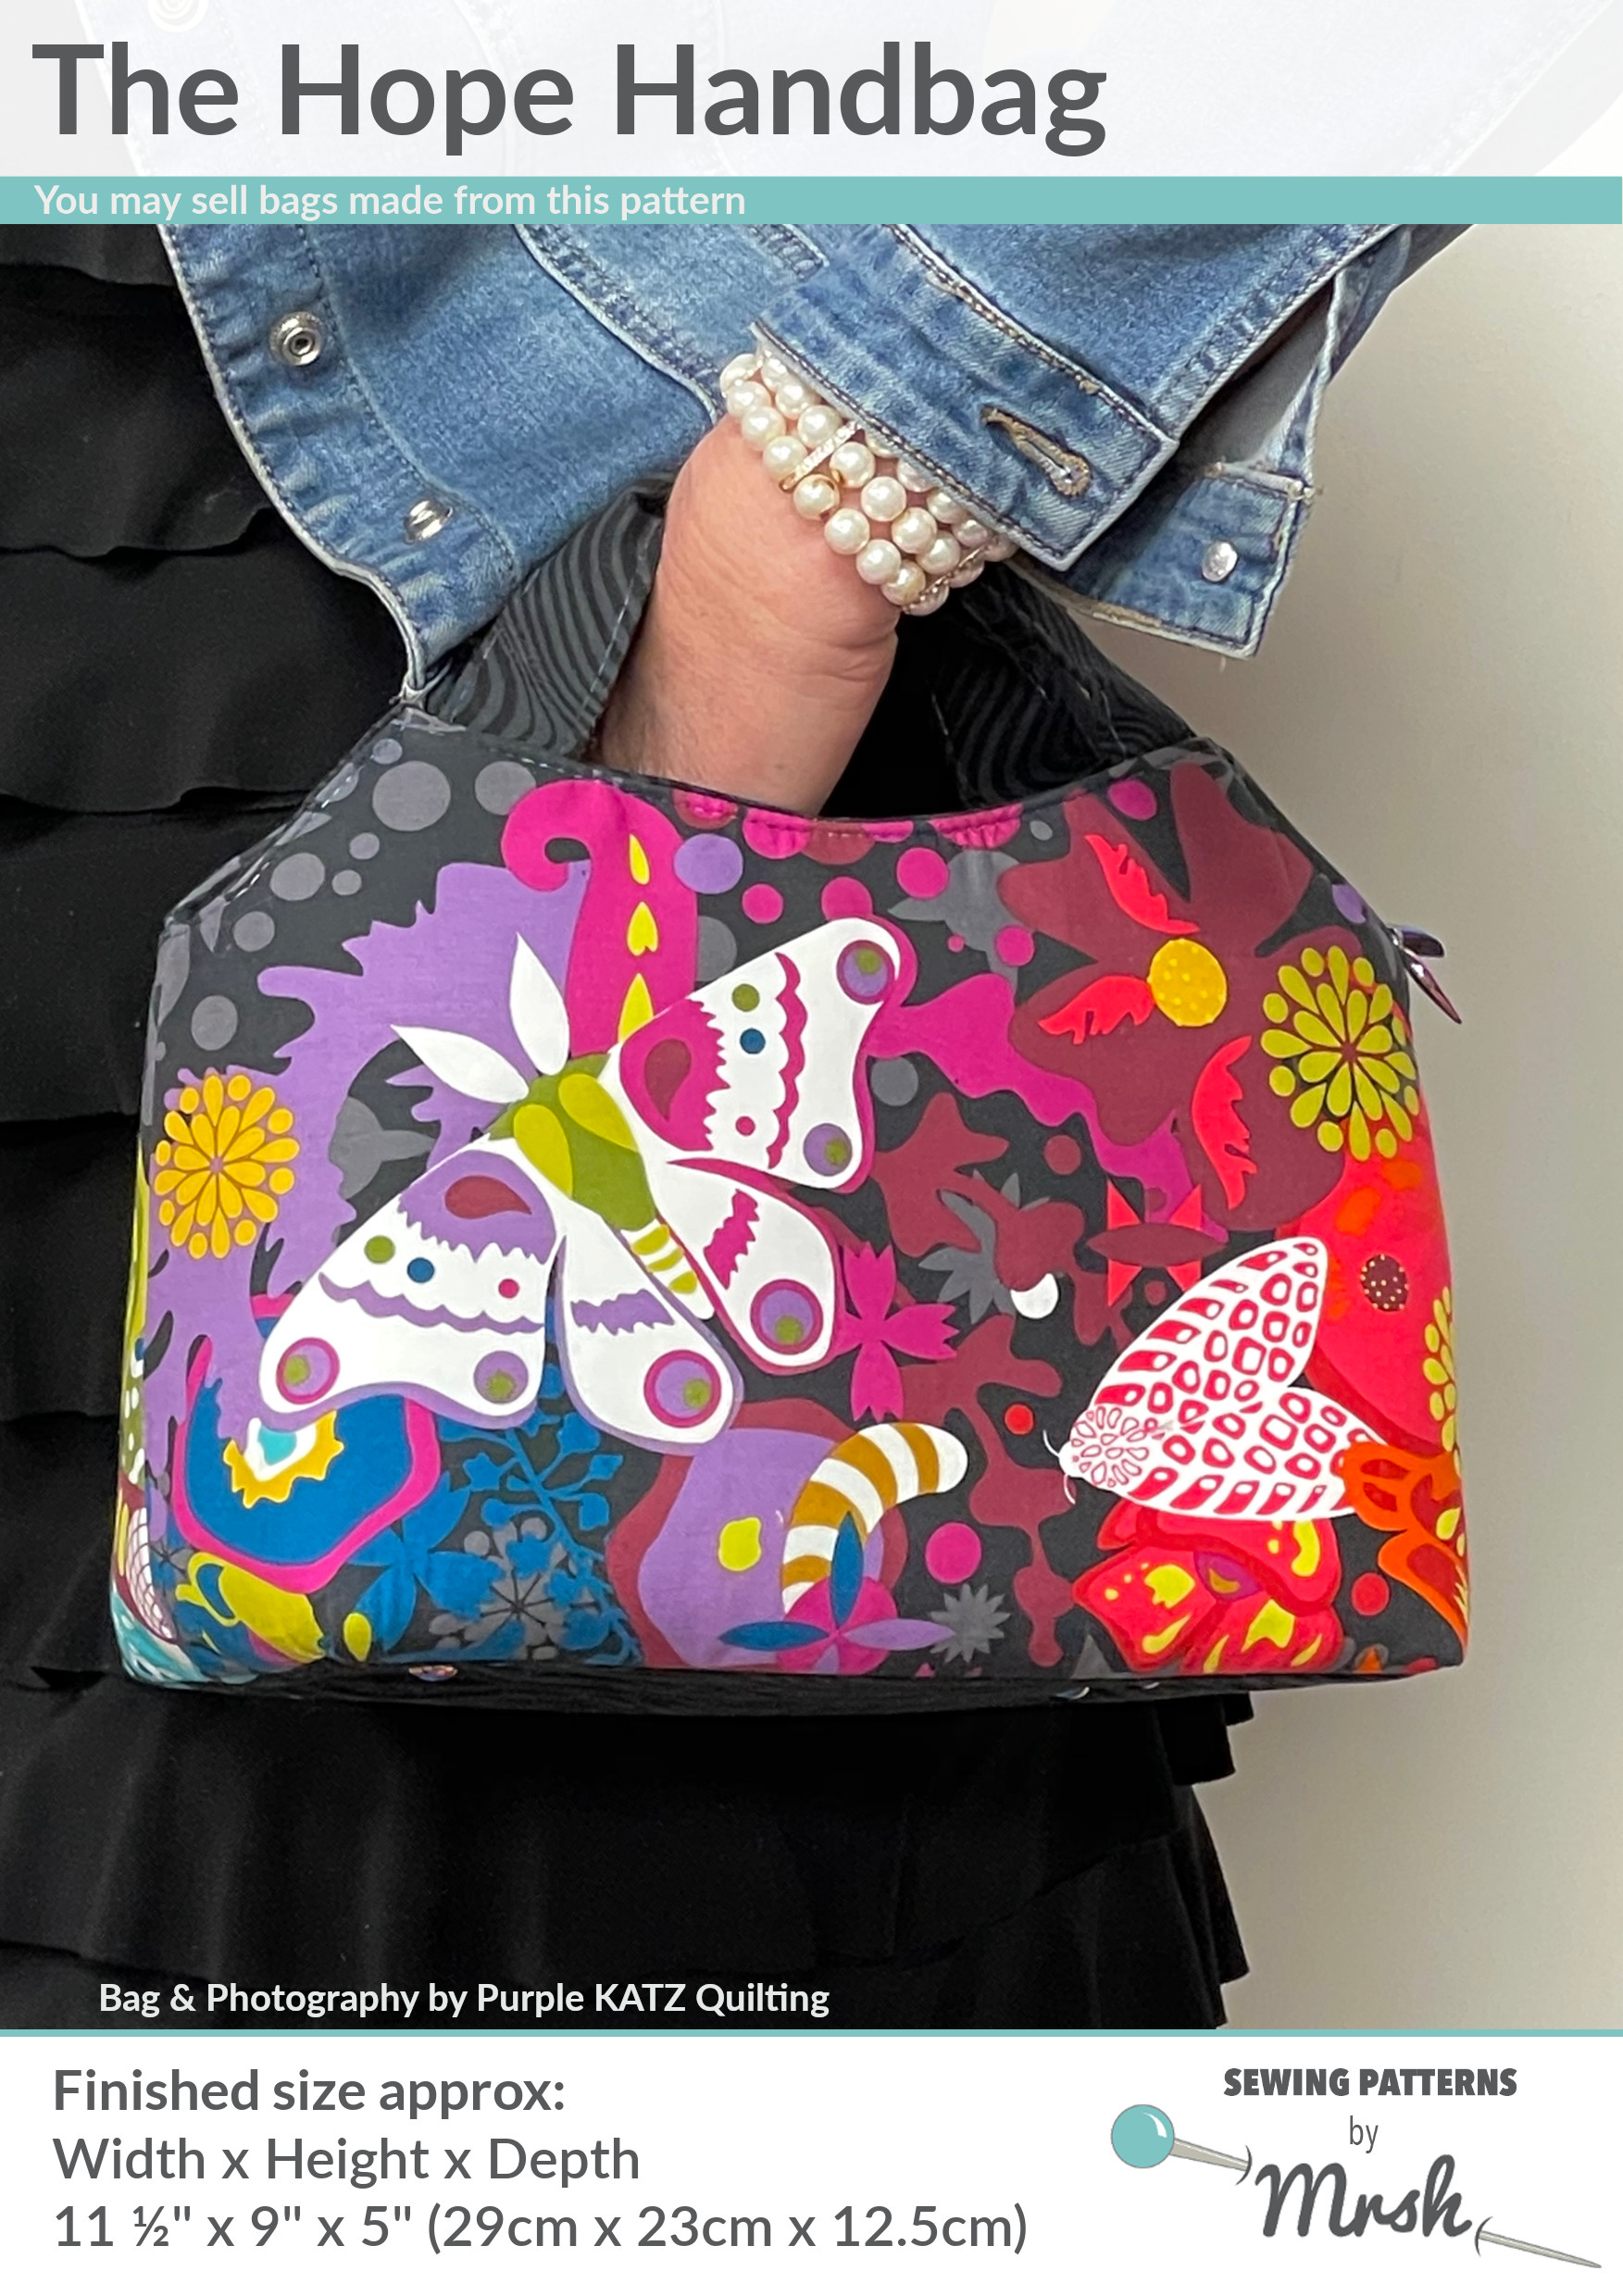 Hope Handbag by Sewing Patterns by Mrs H